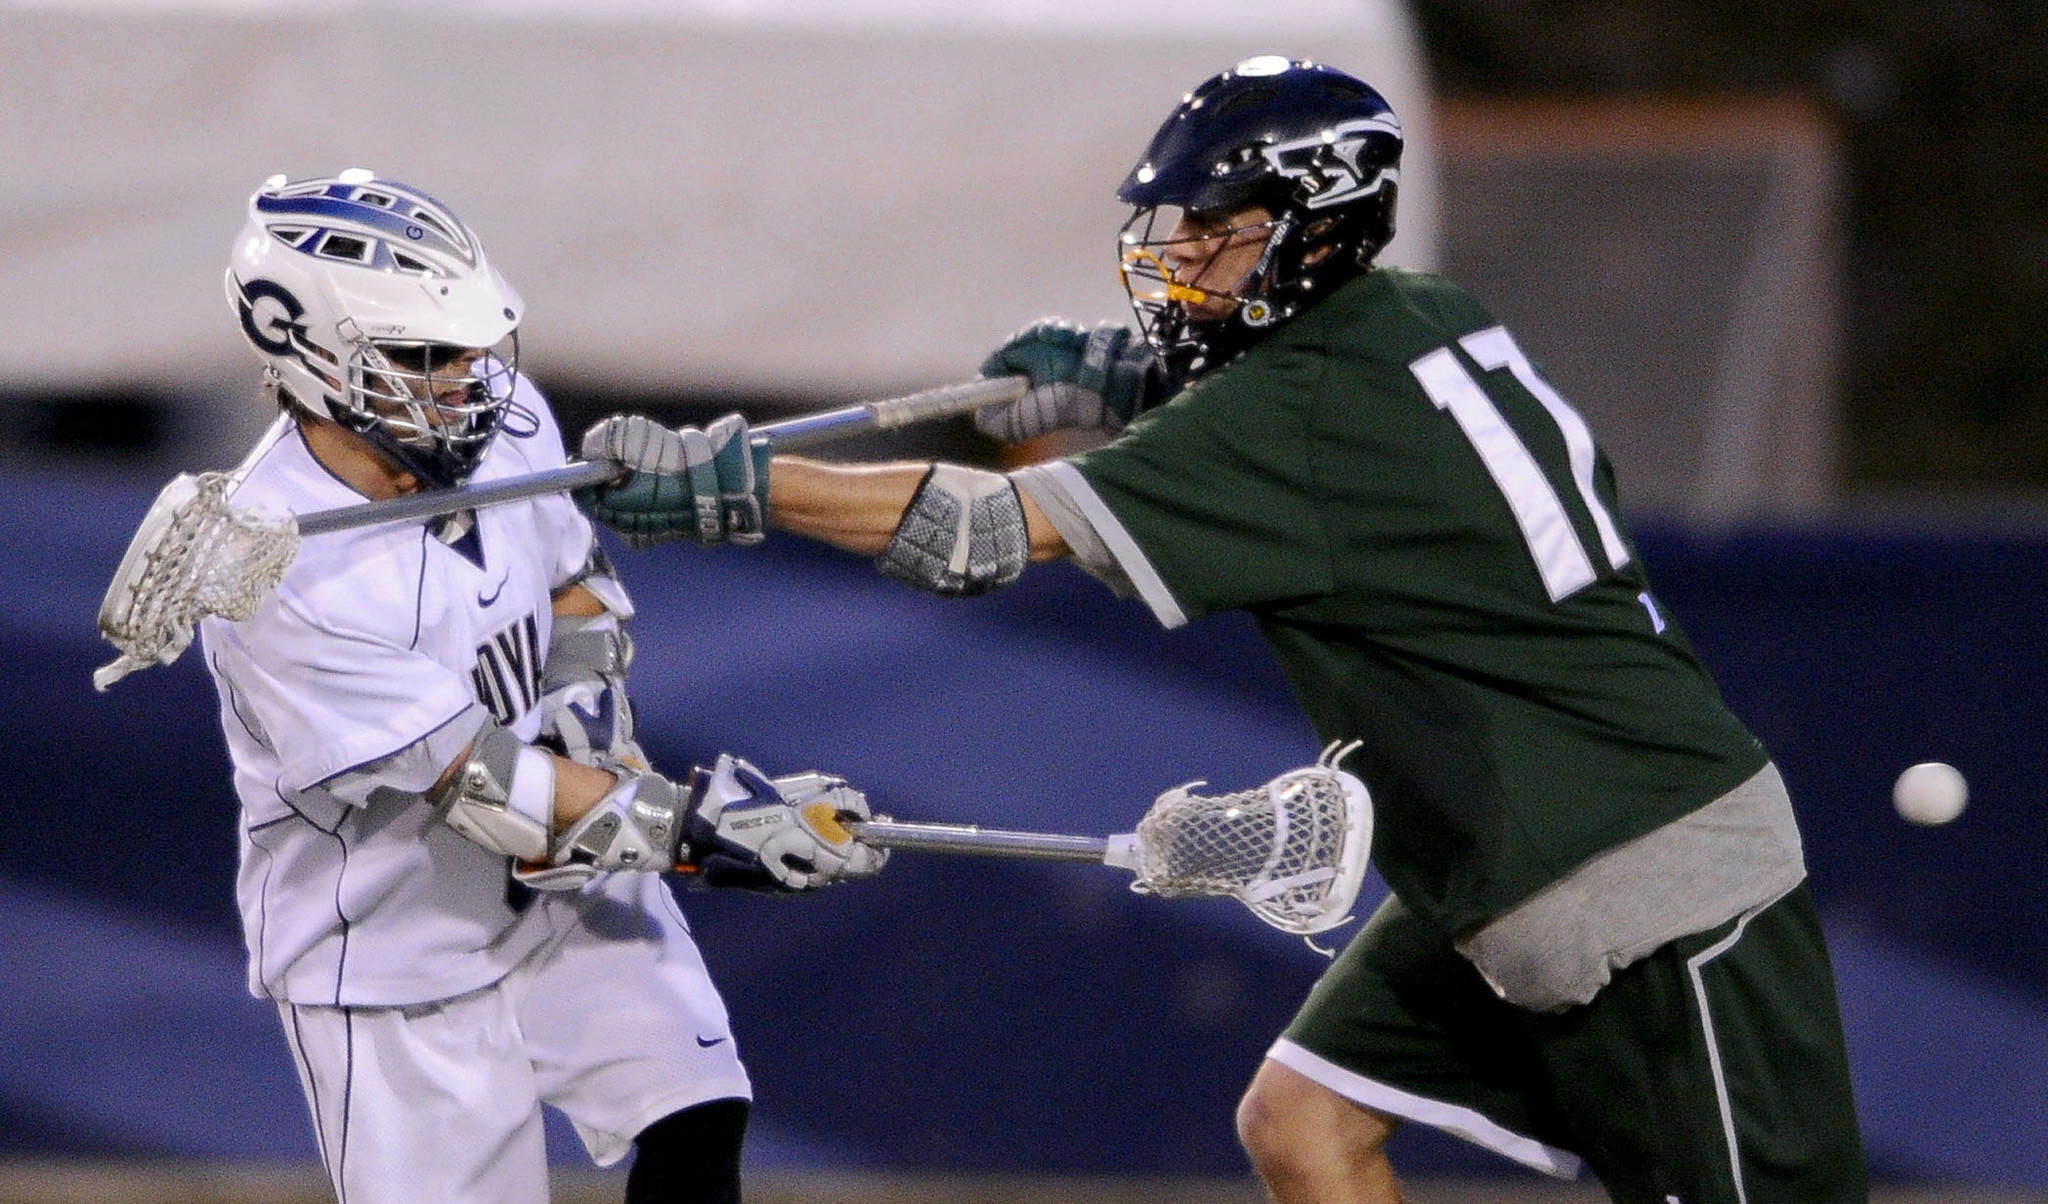 Joe Fletcher isn't the most physical defenseman in college lacrosse, but he may be the best.